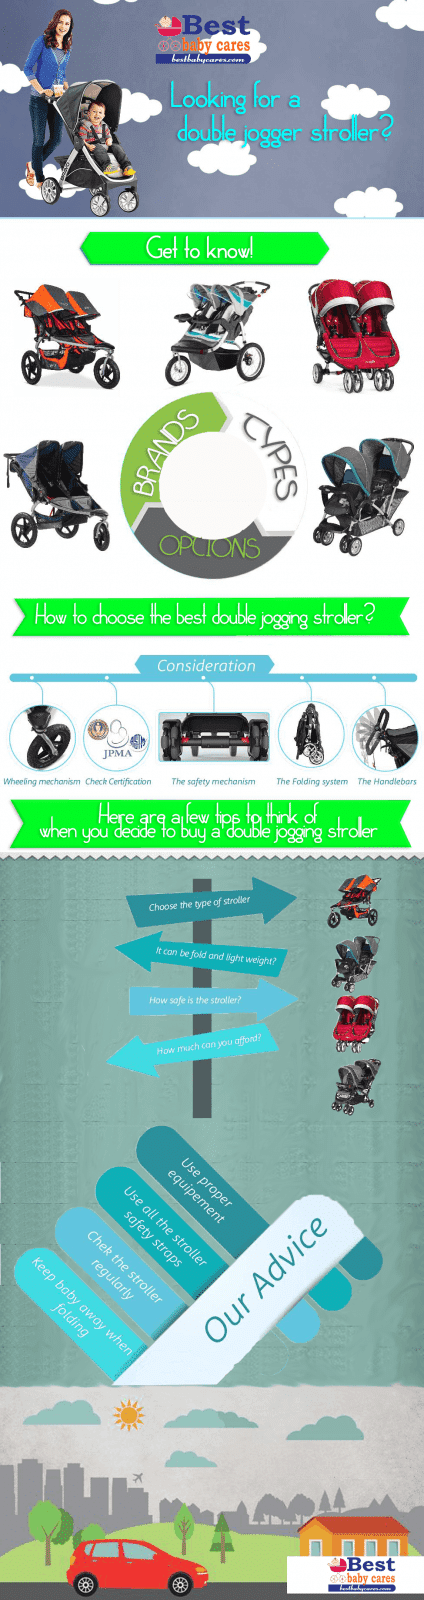 double-jogging-stroller-infographic